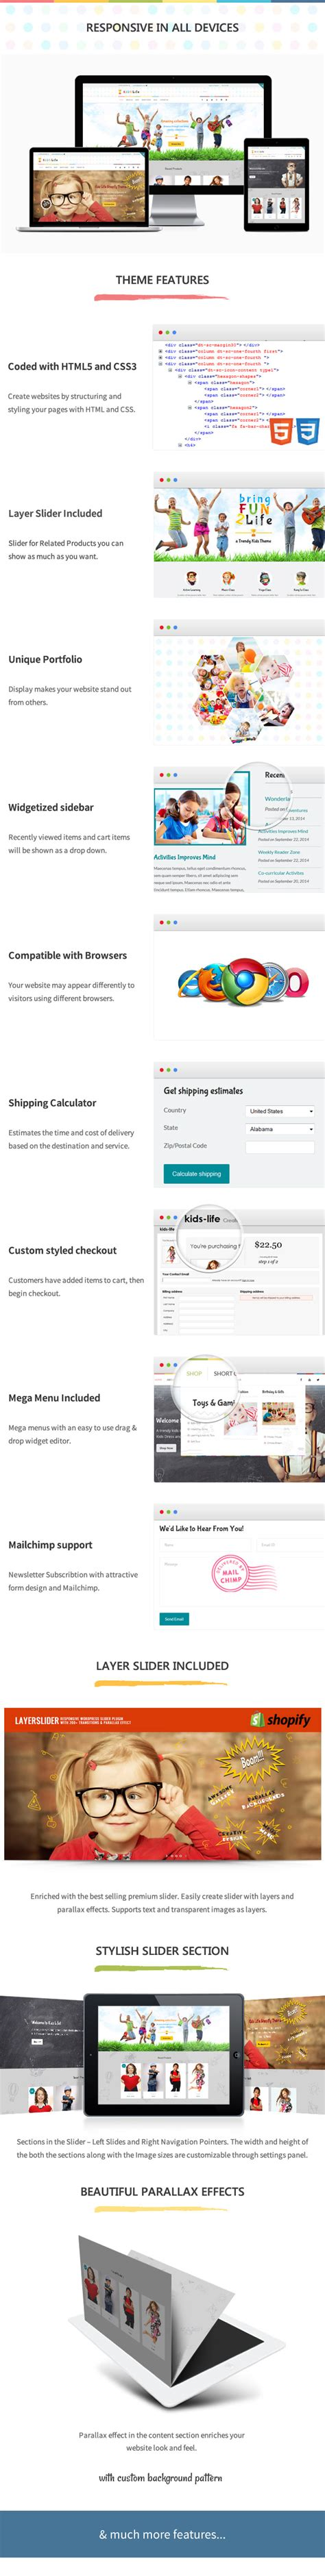 shopify themes discount kidslife responsive shopify theme shopify need for themes